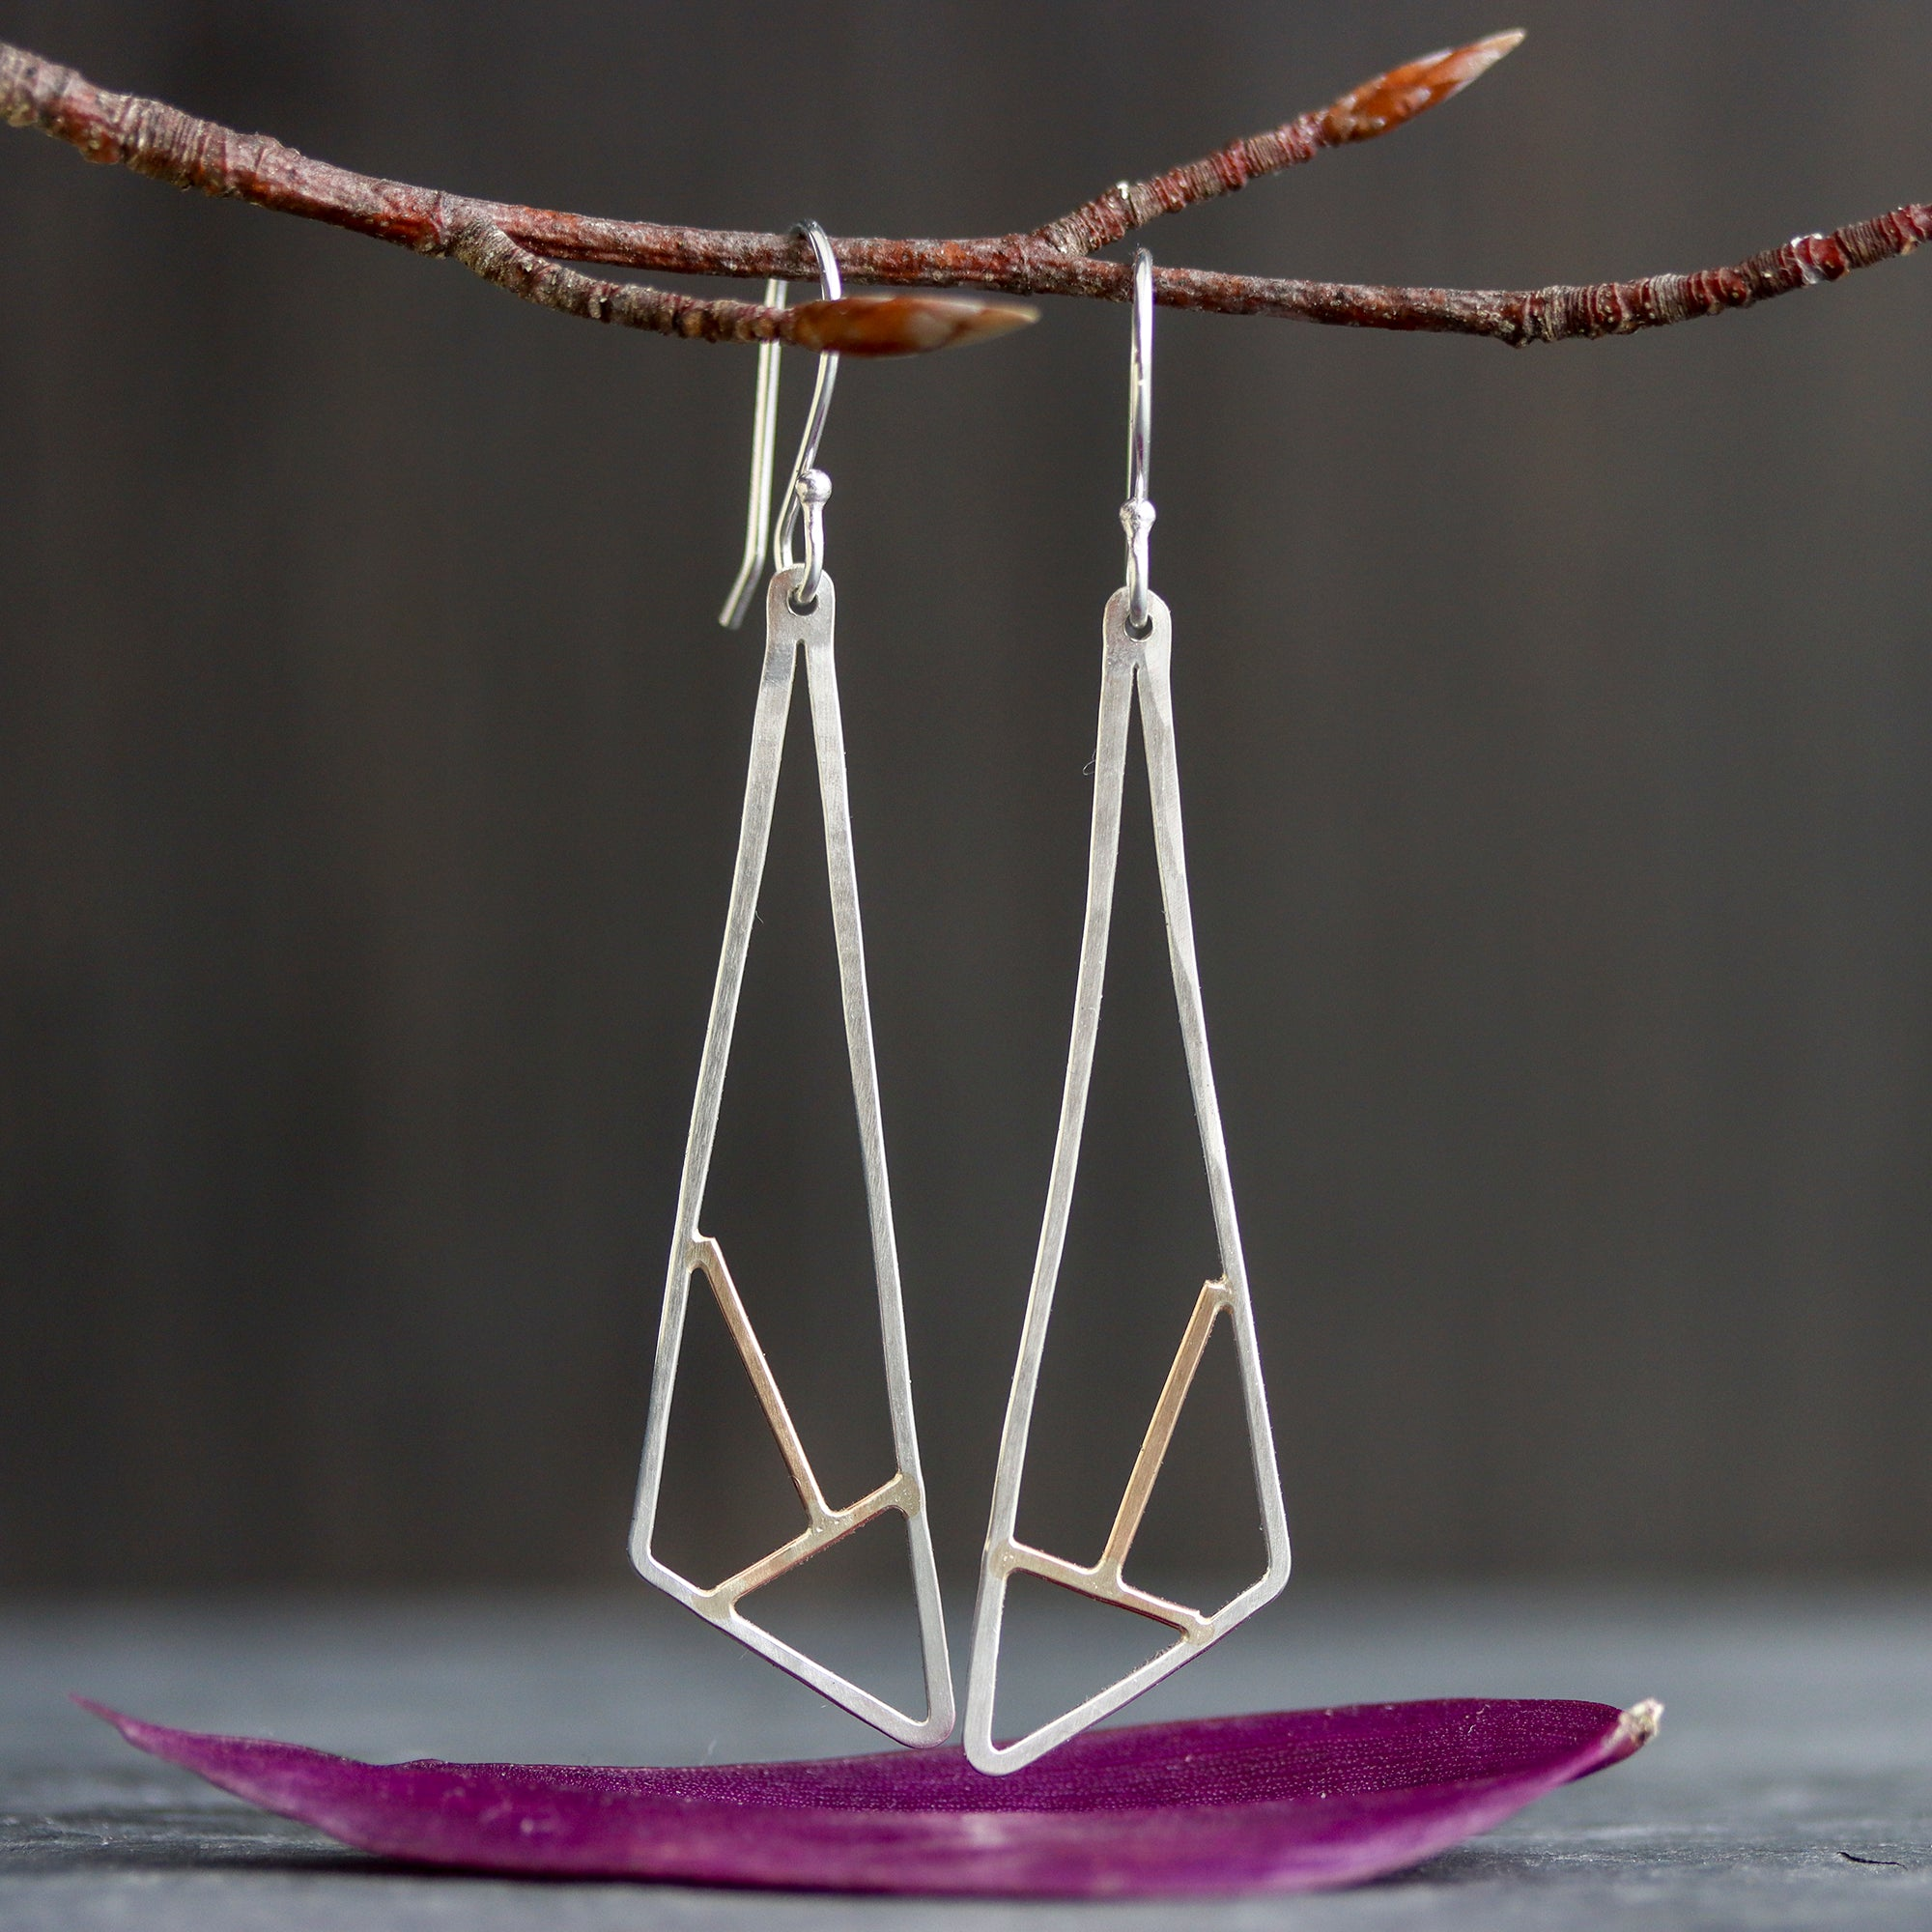 Rebecca Haas Jewelry Spring Collection - Meadowhawk Earrings